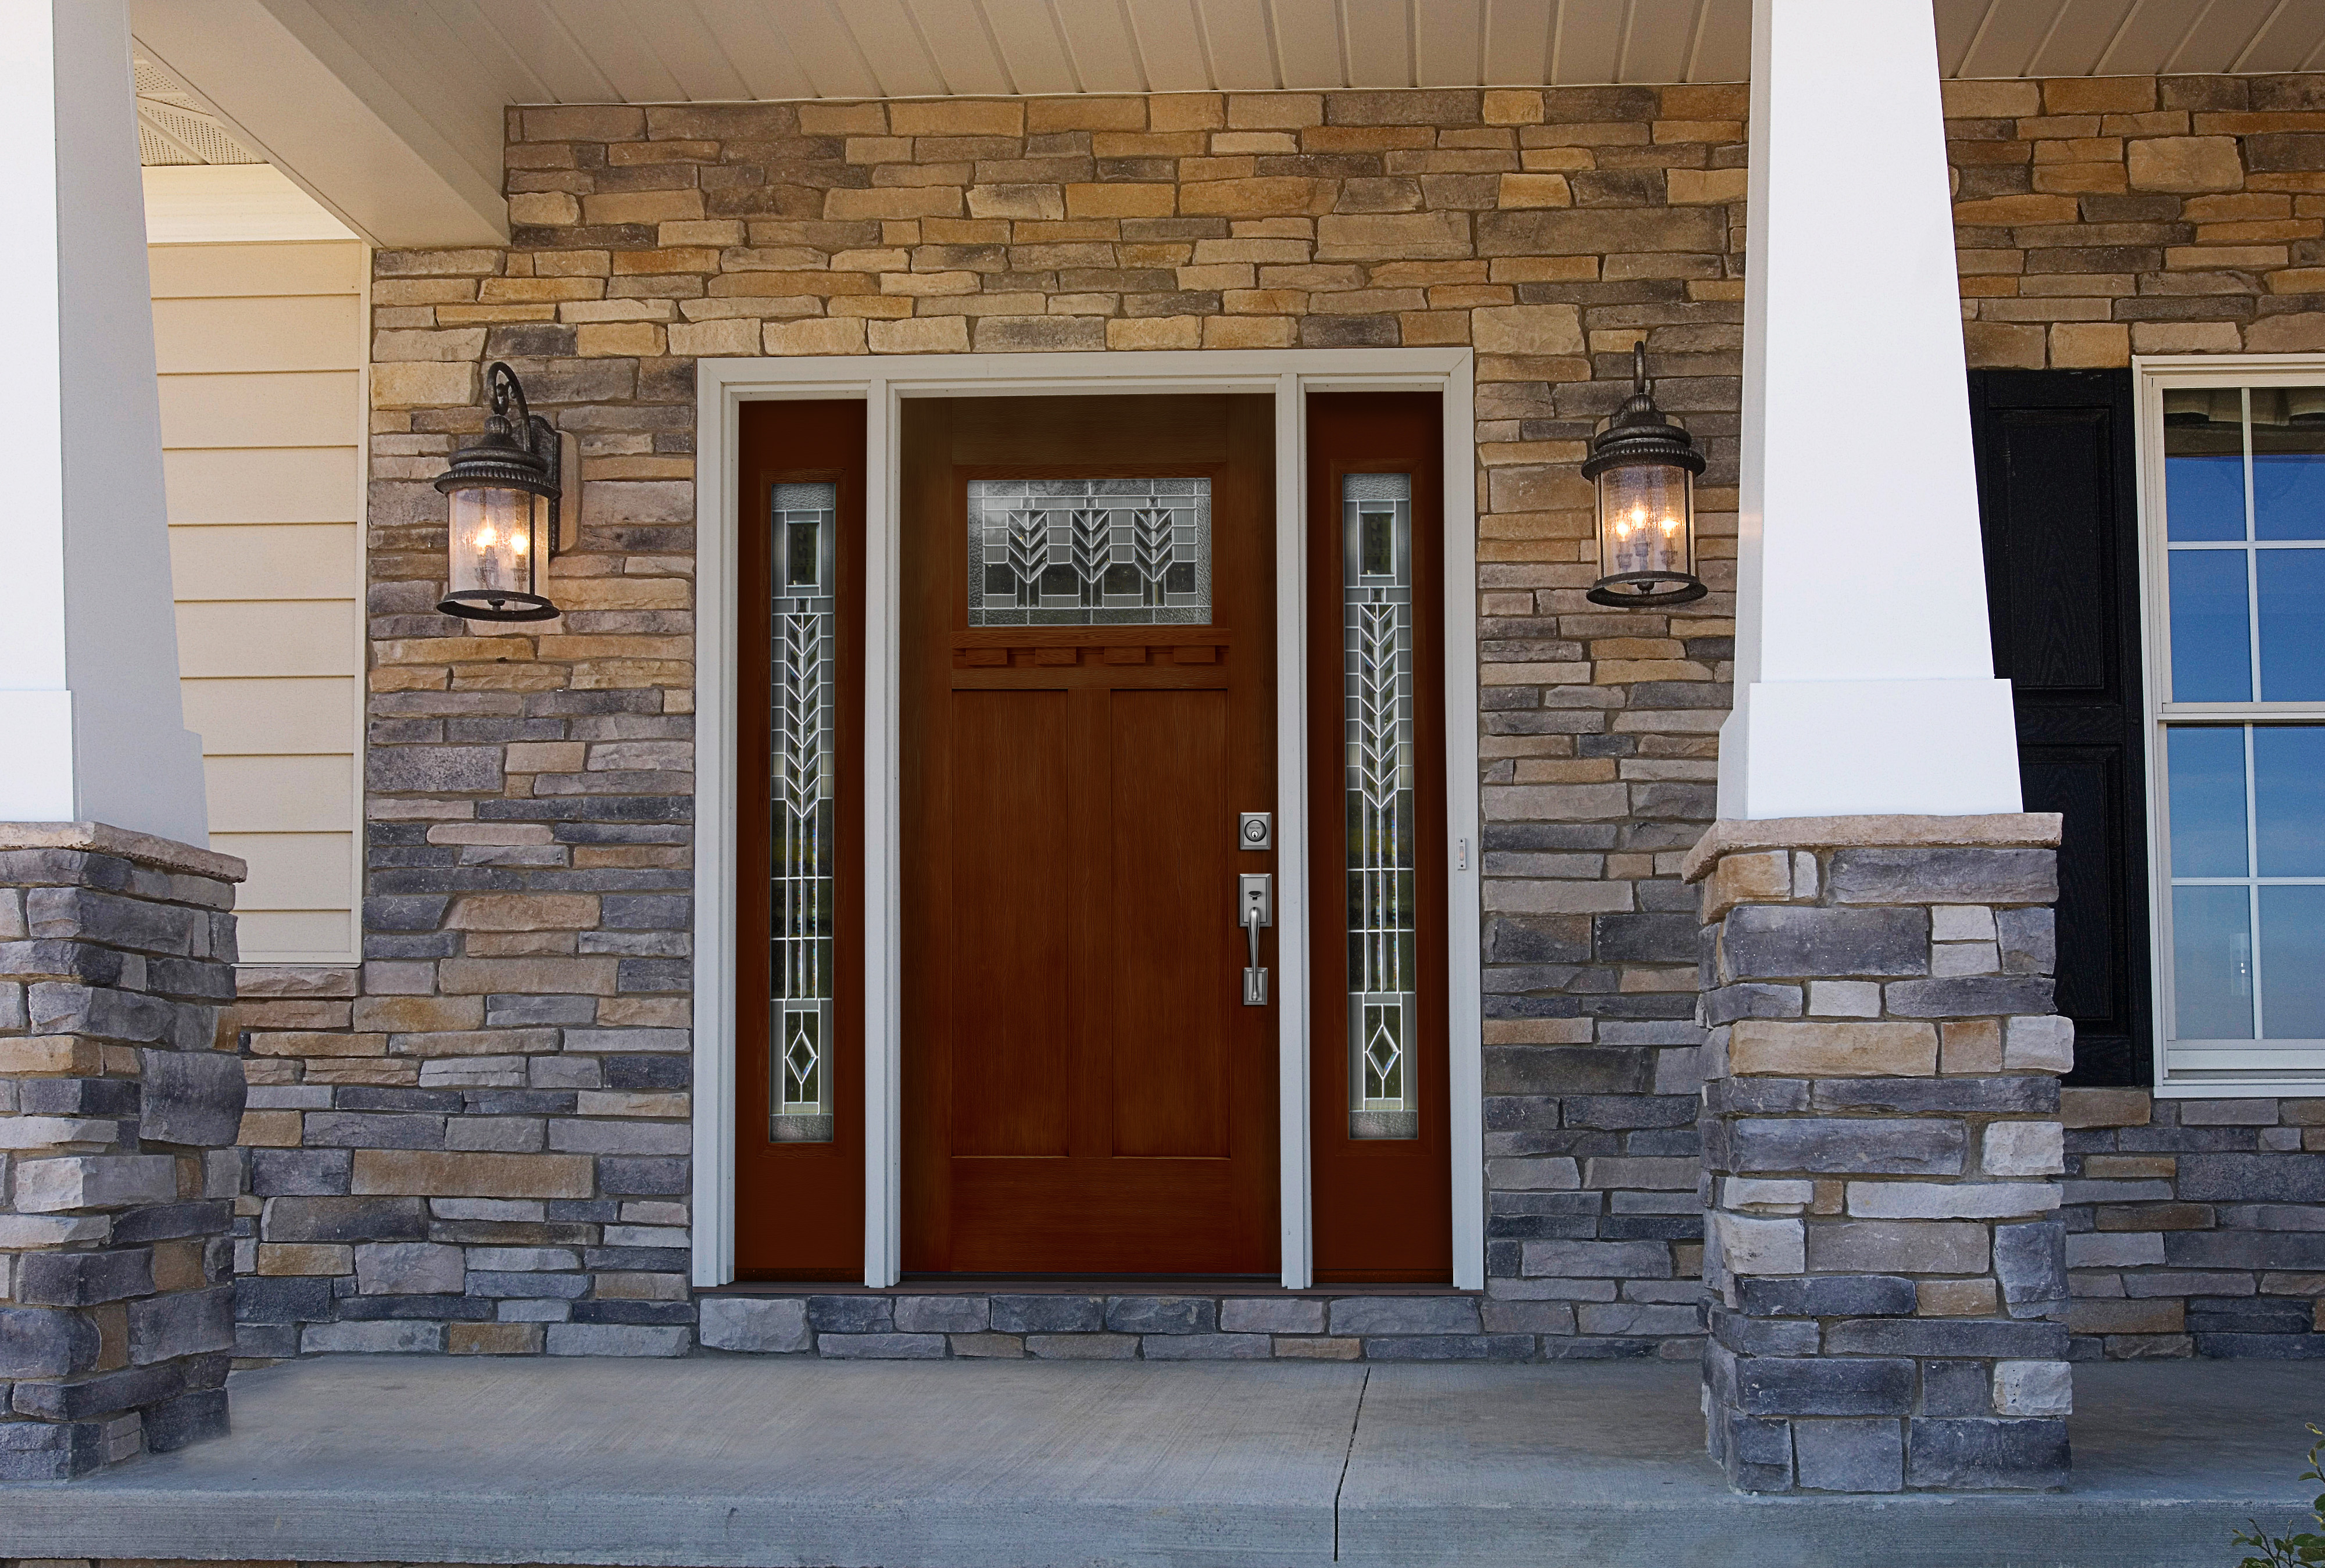 exterior doors roscoe il kobyco replacement windows interior and exterior doors closet organizers and more serving rockford il and surrounding areas